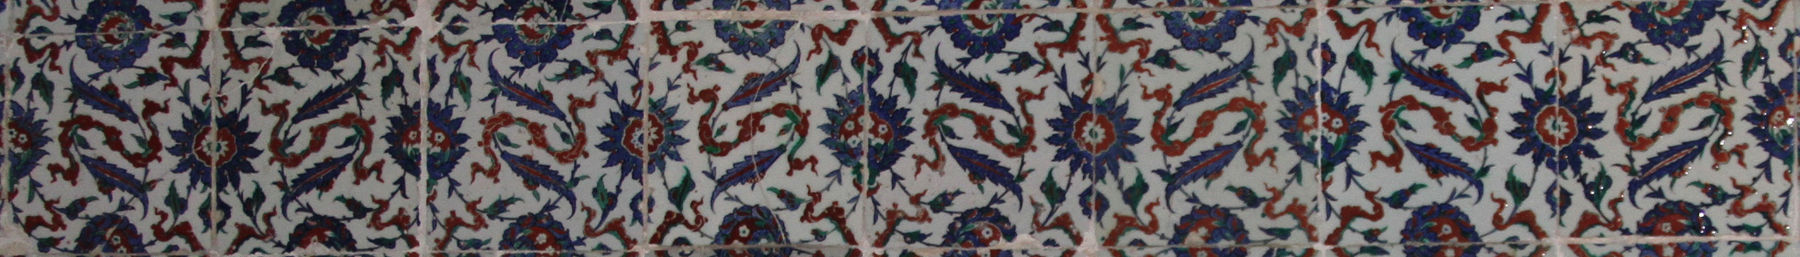 Tiles from the Topkapı Palace in Istanbul